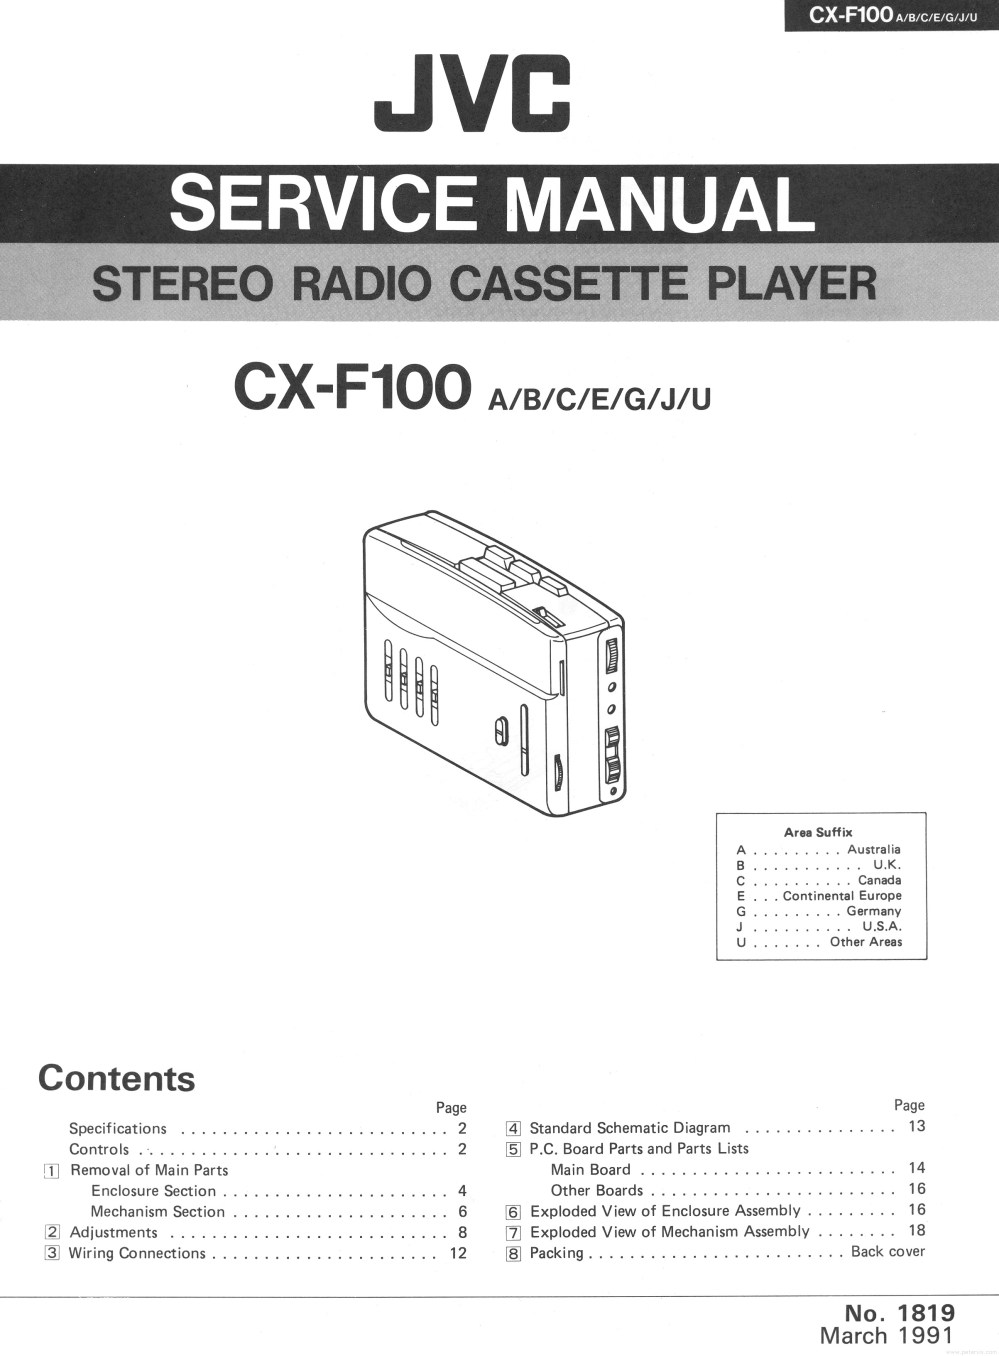 medium resolution of the cx f100 was a stereo cassette player with am fm radio manufactured by the jvc corporation in 1991 it had auto reverse 3 band graphic equalizer